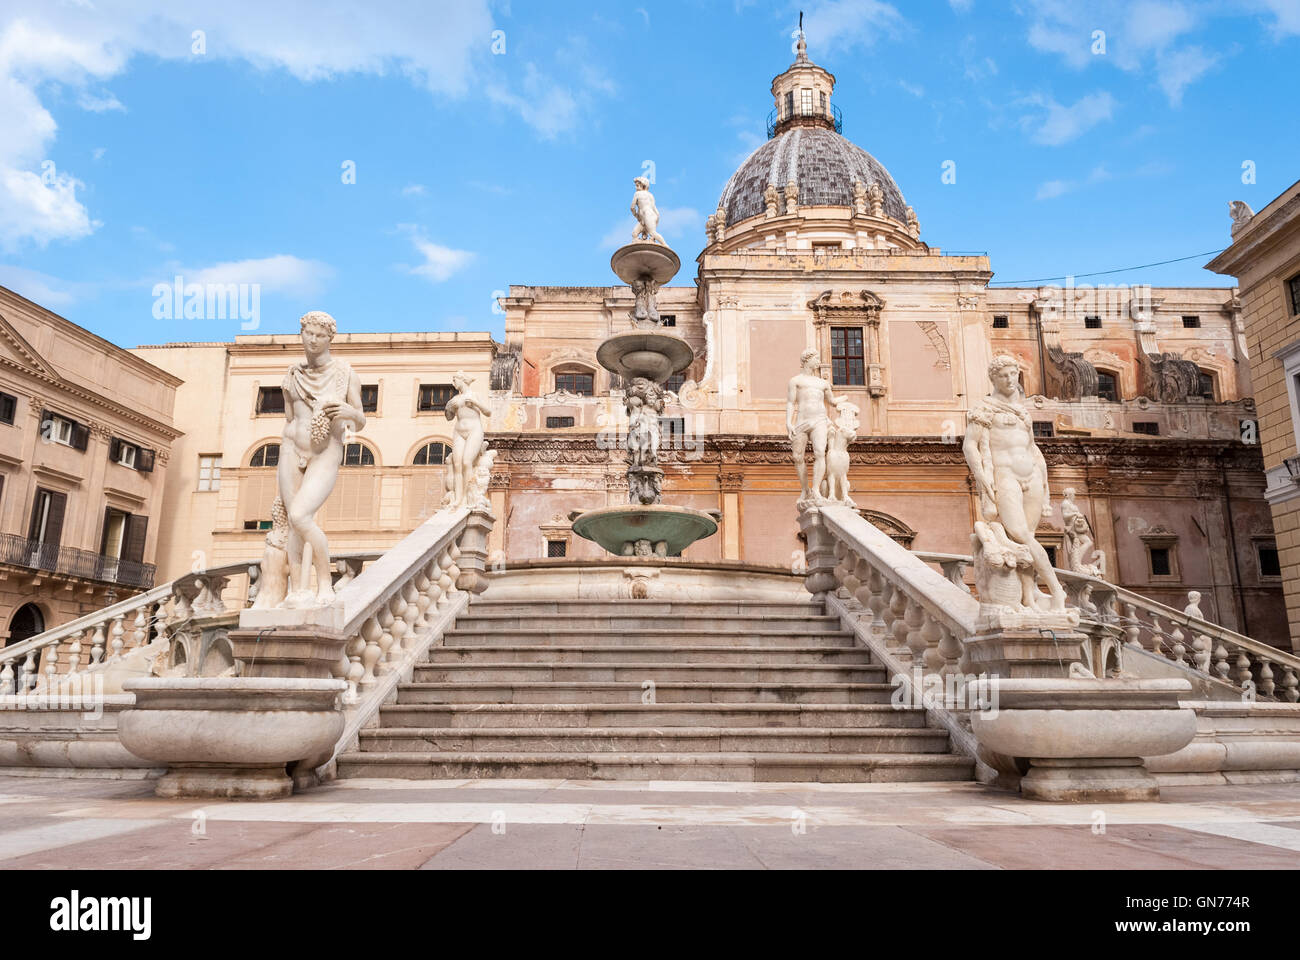 Stairs of the fountain in Piazza Pretoria, Palermo - Stock Image